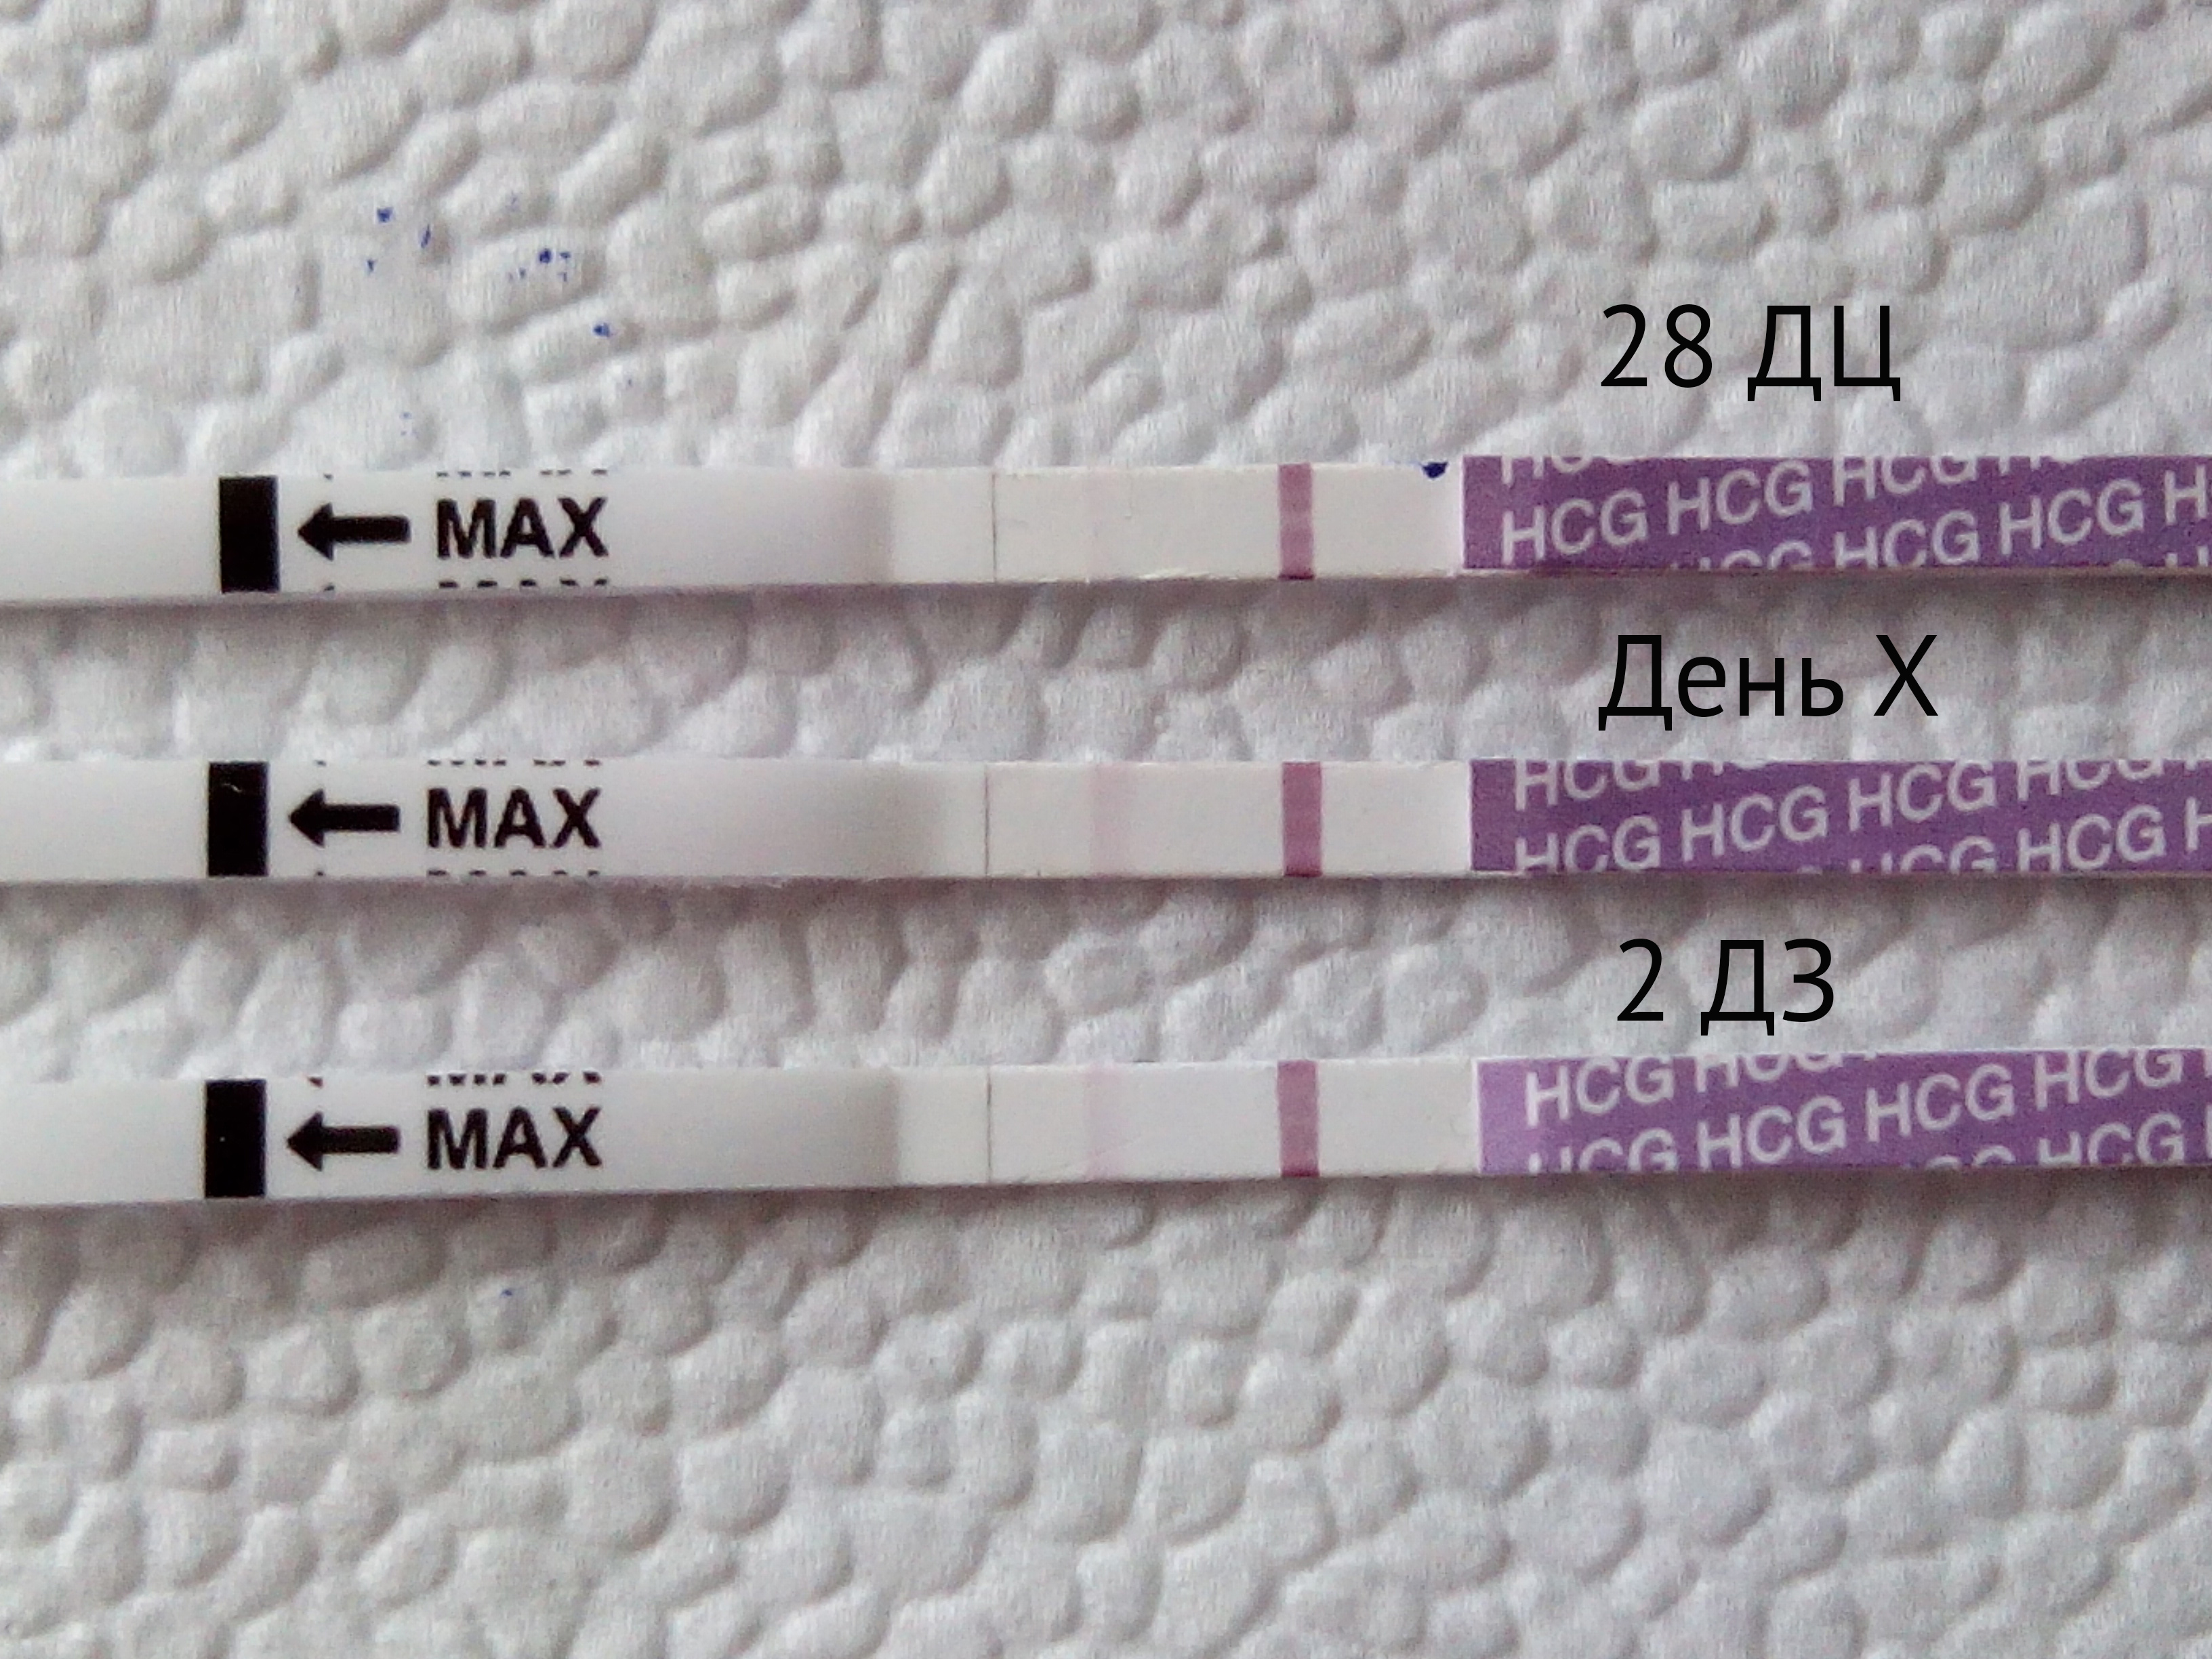 Tips that you should consider when buying a pregnancy test